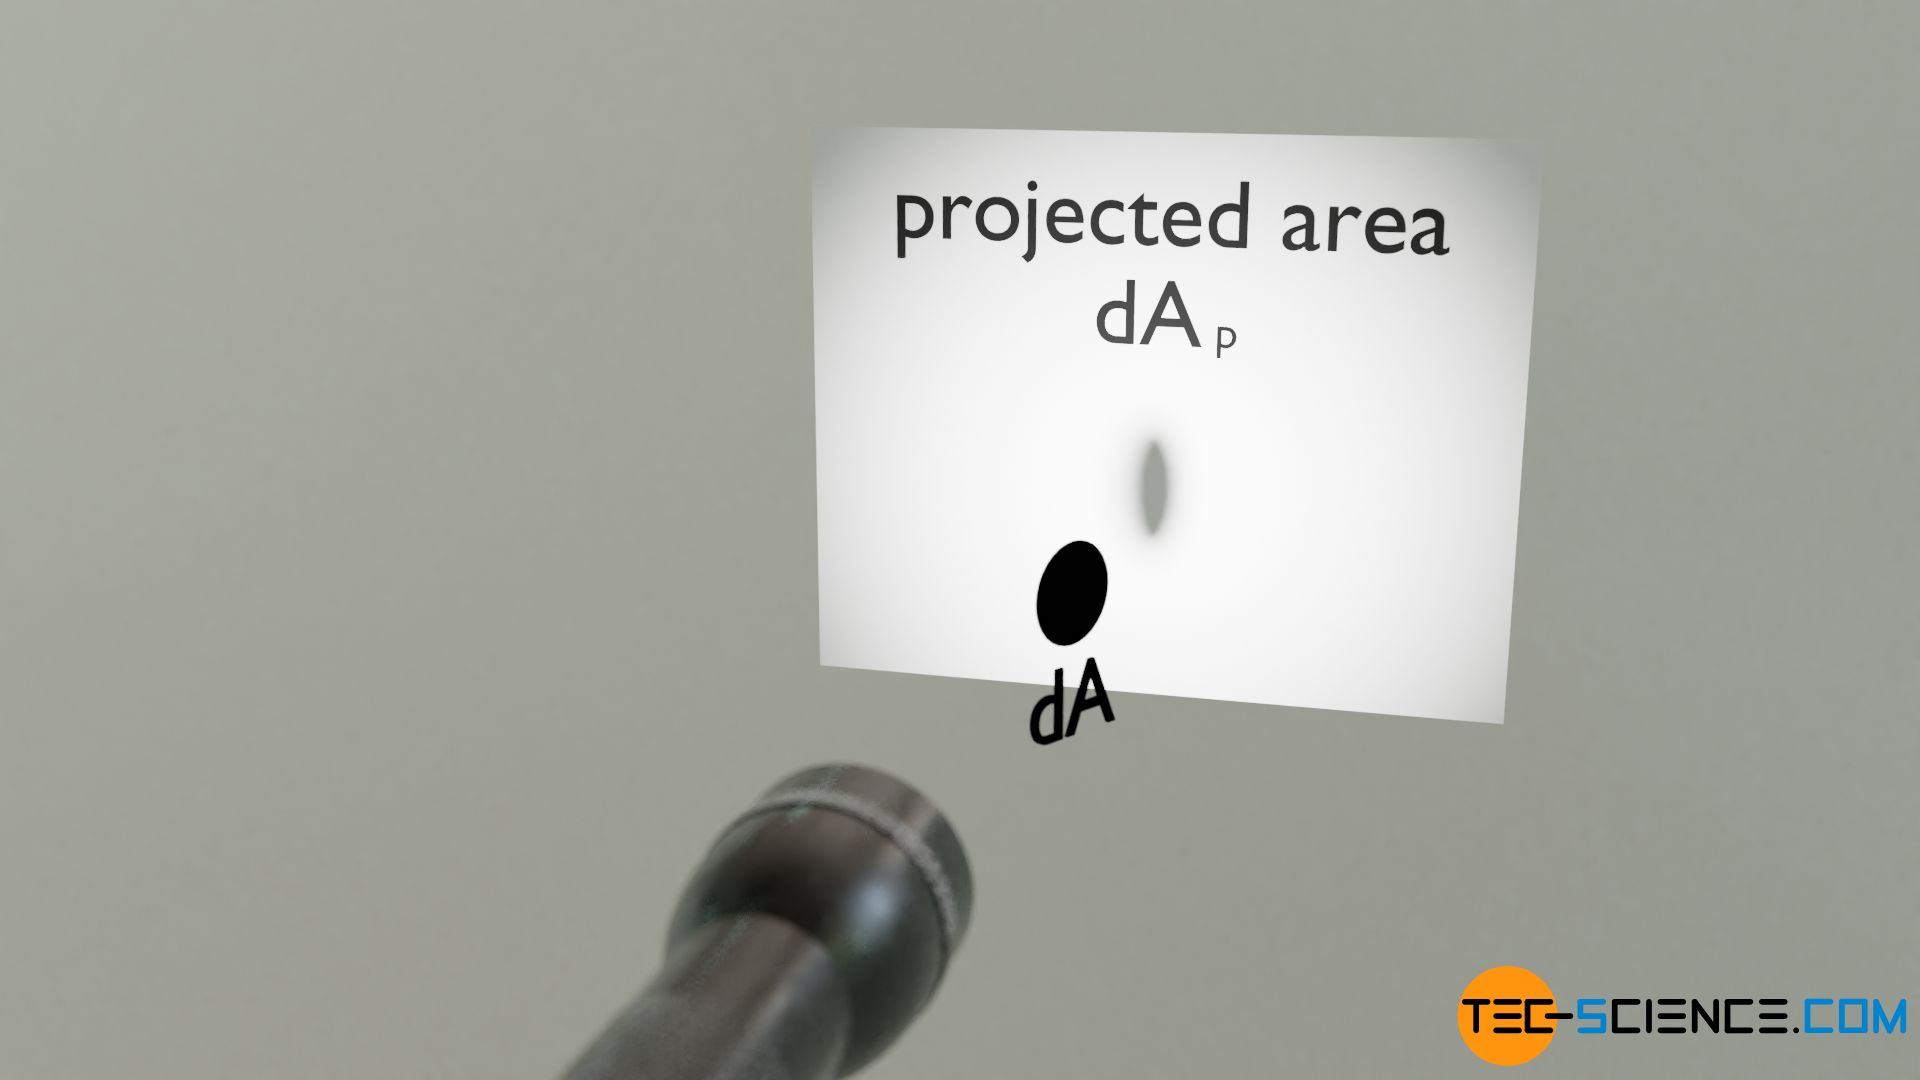 Projected area